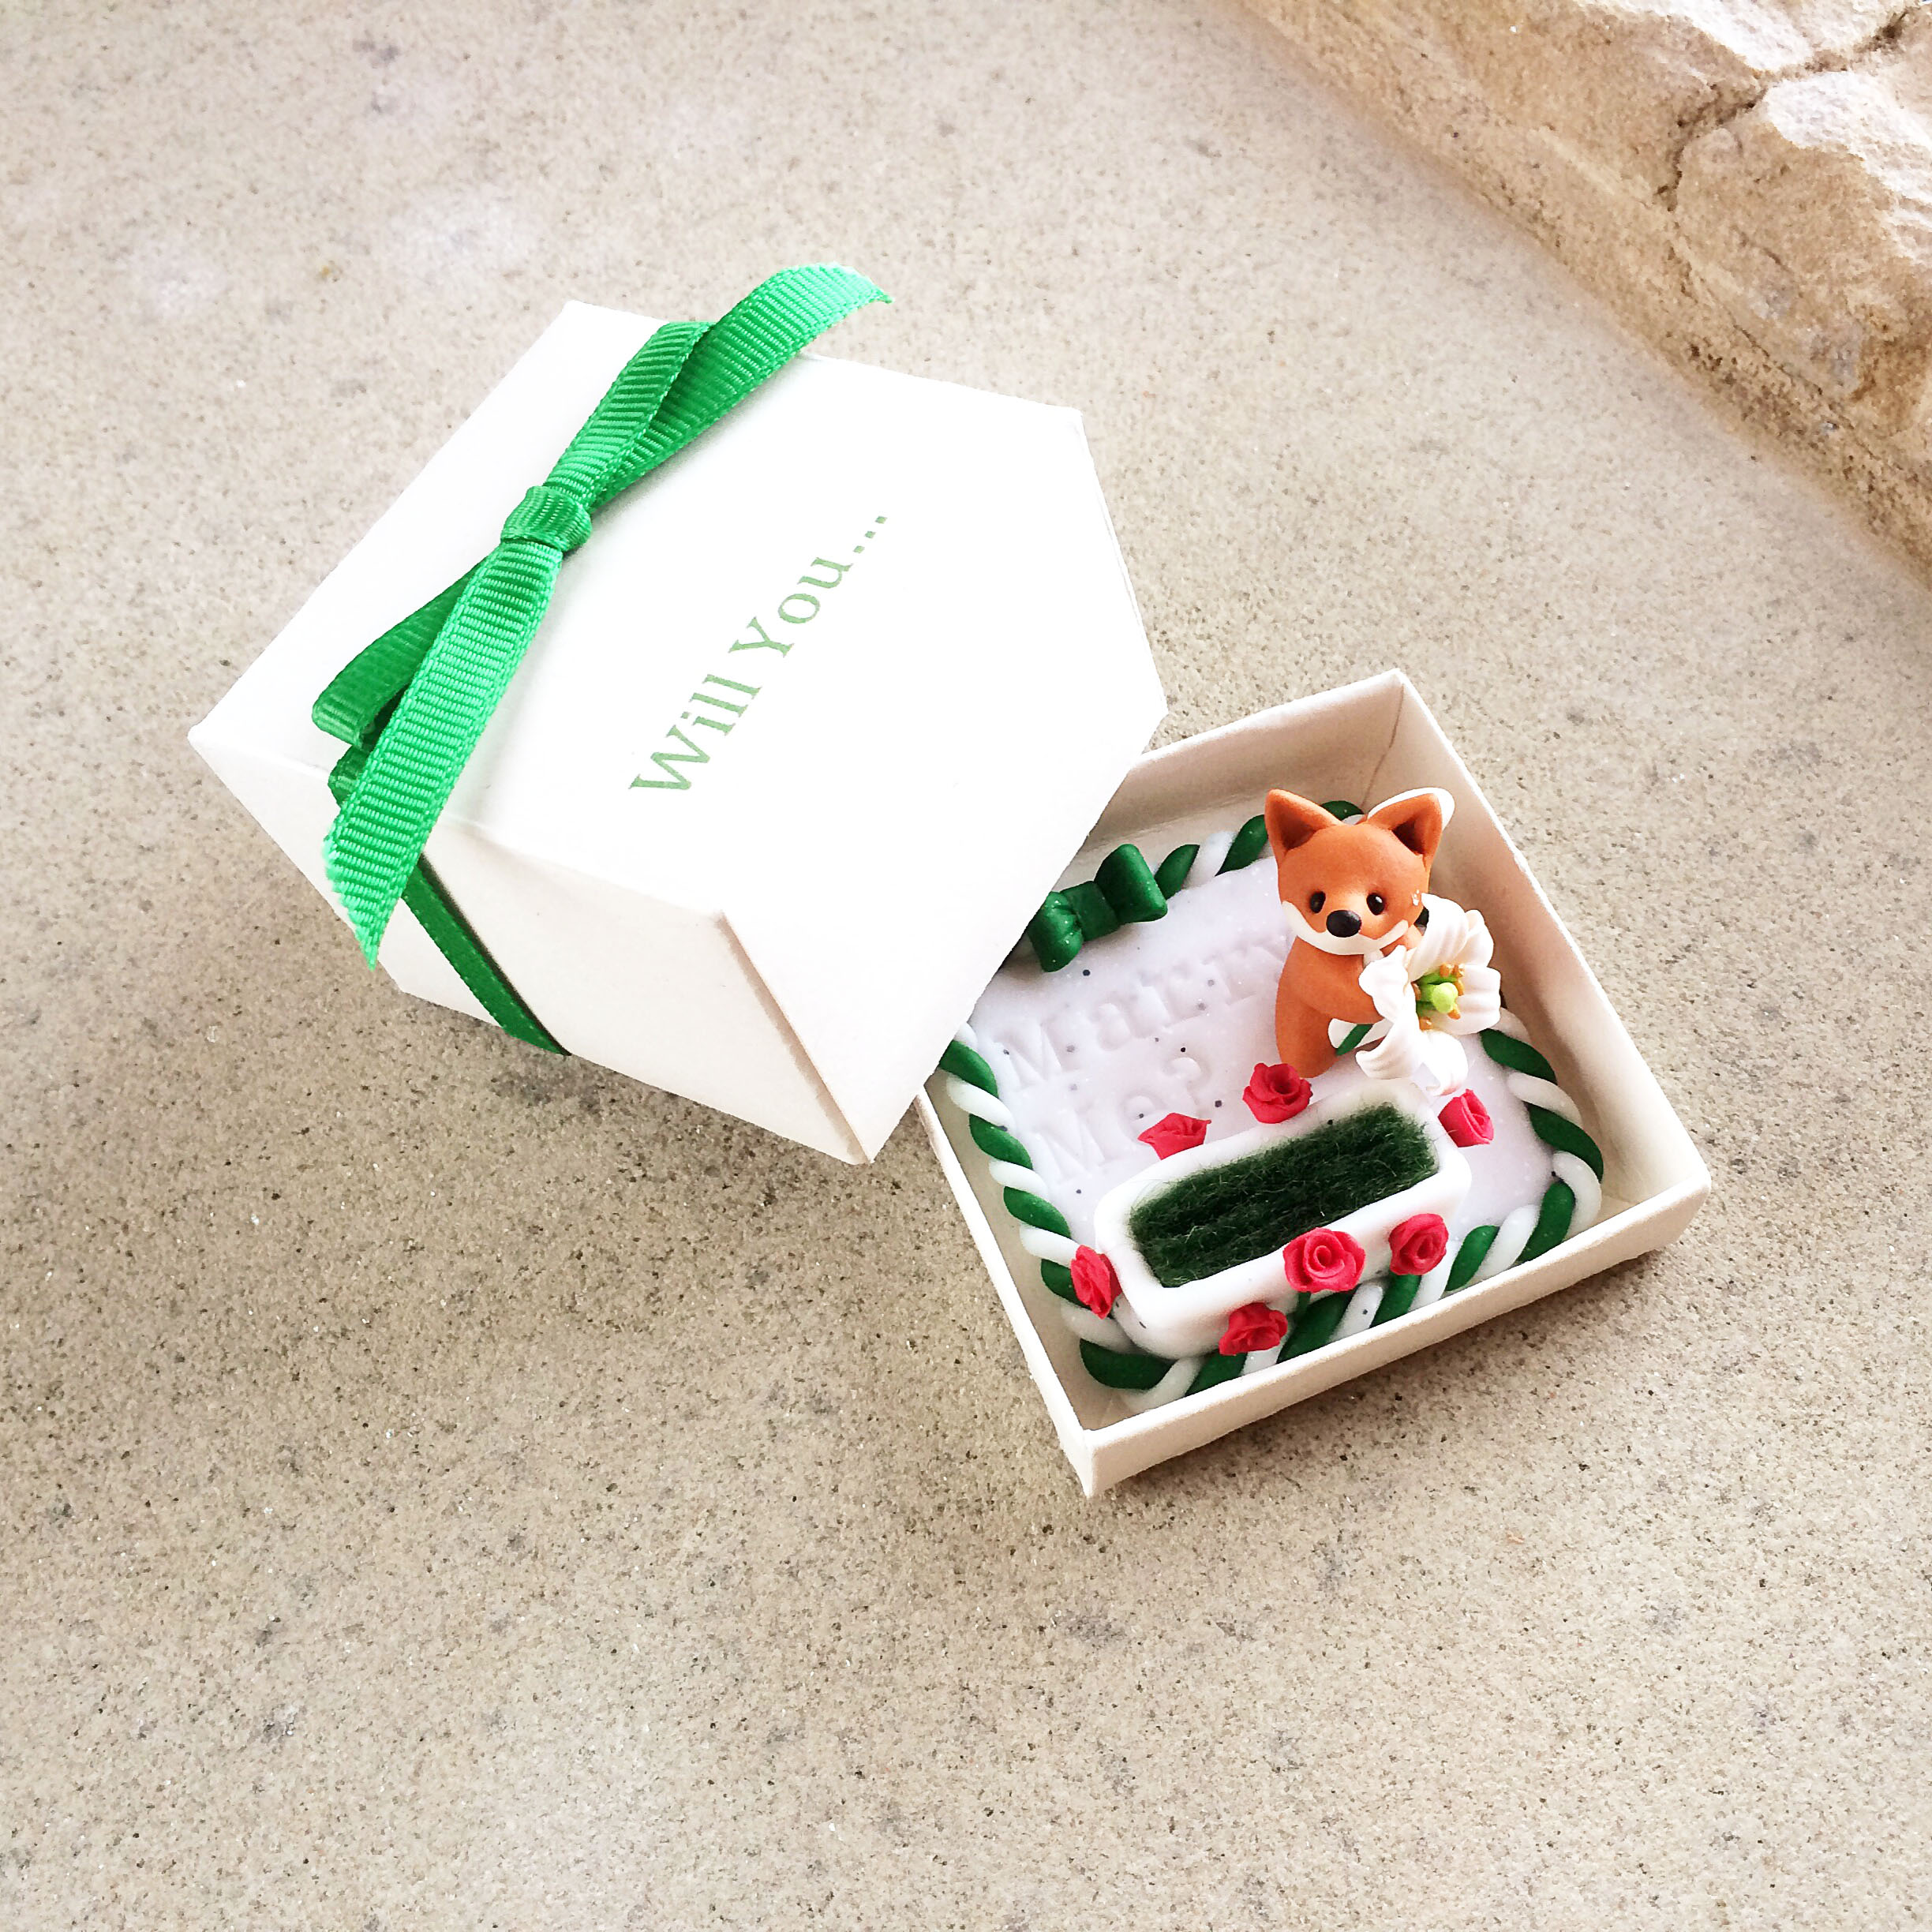 Fox 'will you marry me?' ring box